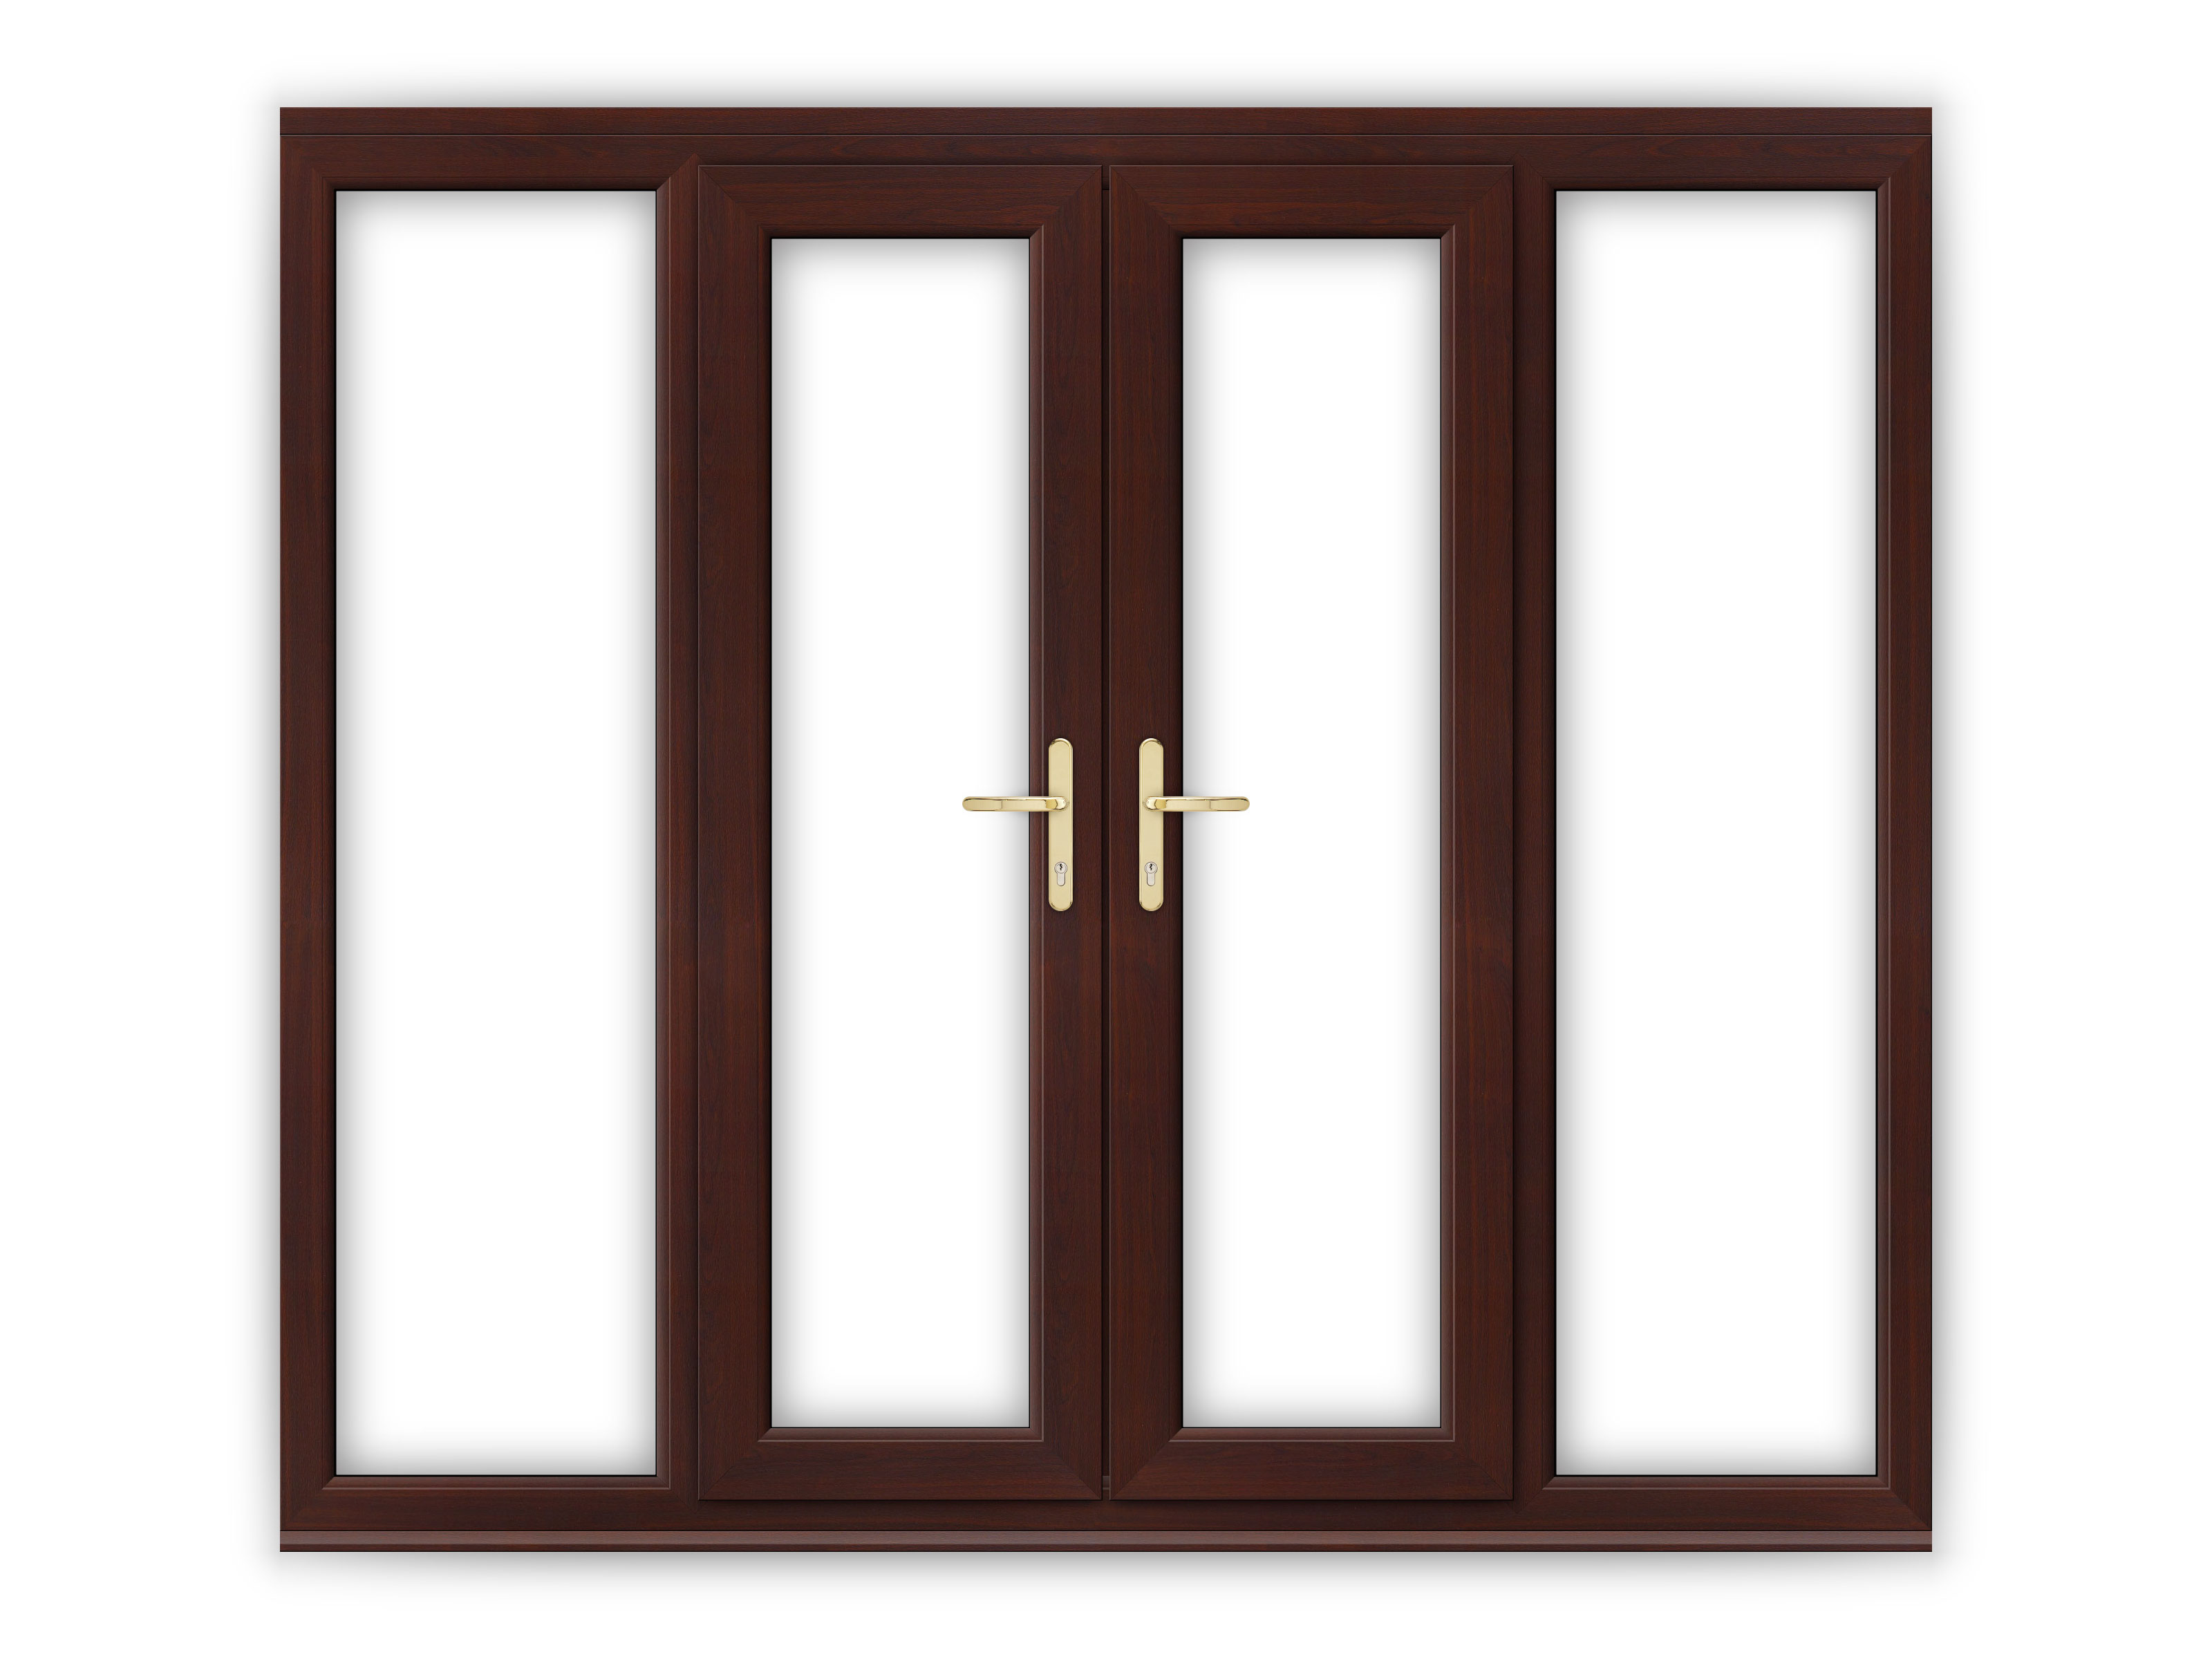 ideas furniture metal plus handle and wood sidelights french exterior insert painted with narrow outswing color glass windows white side doors